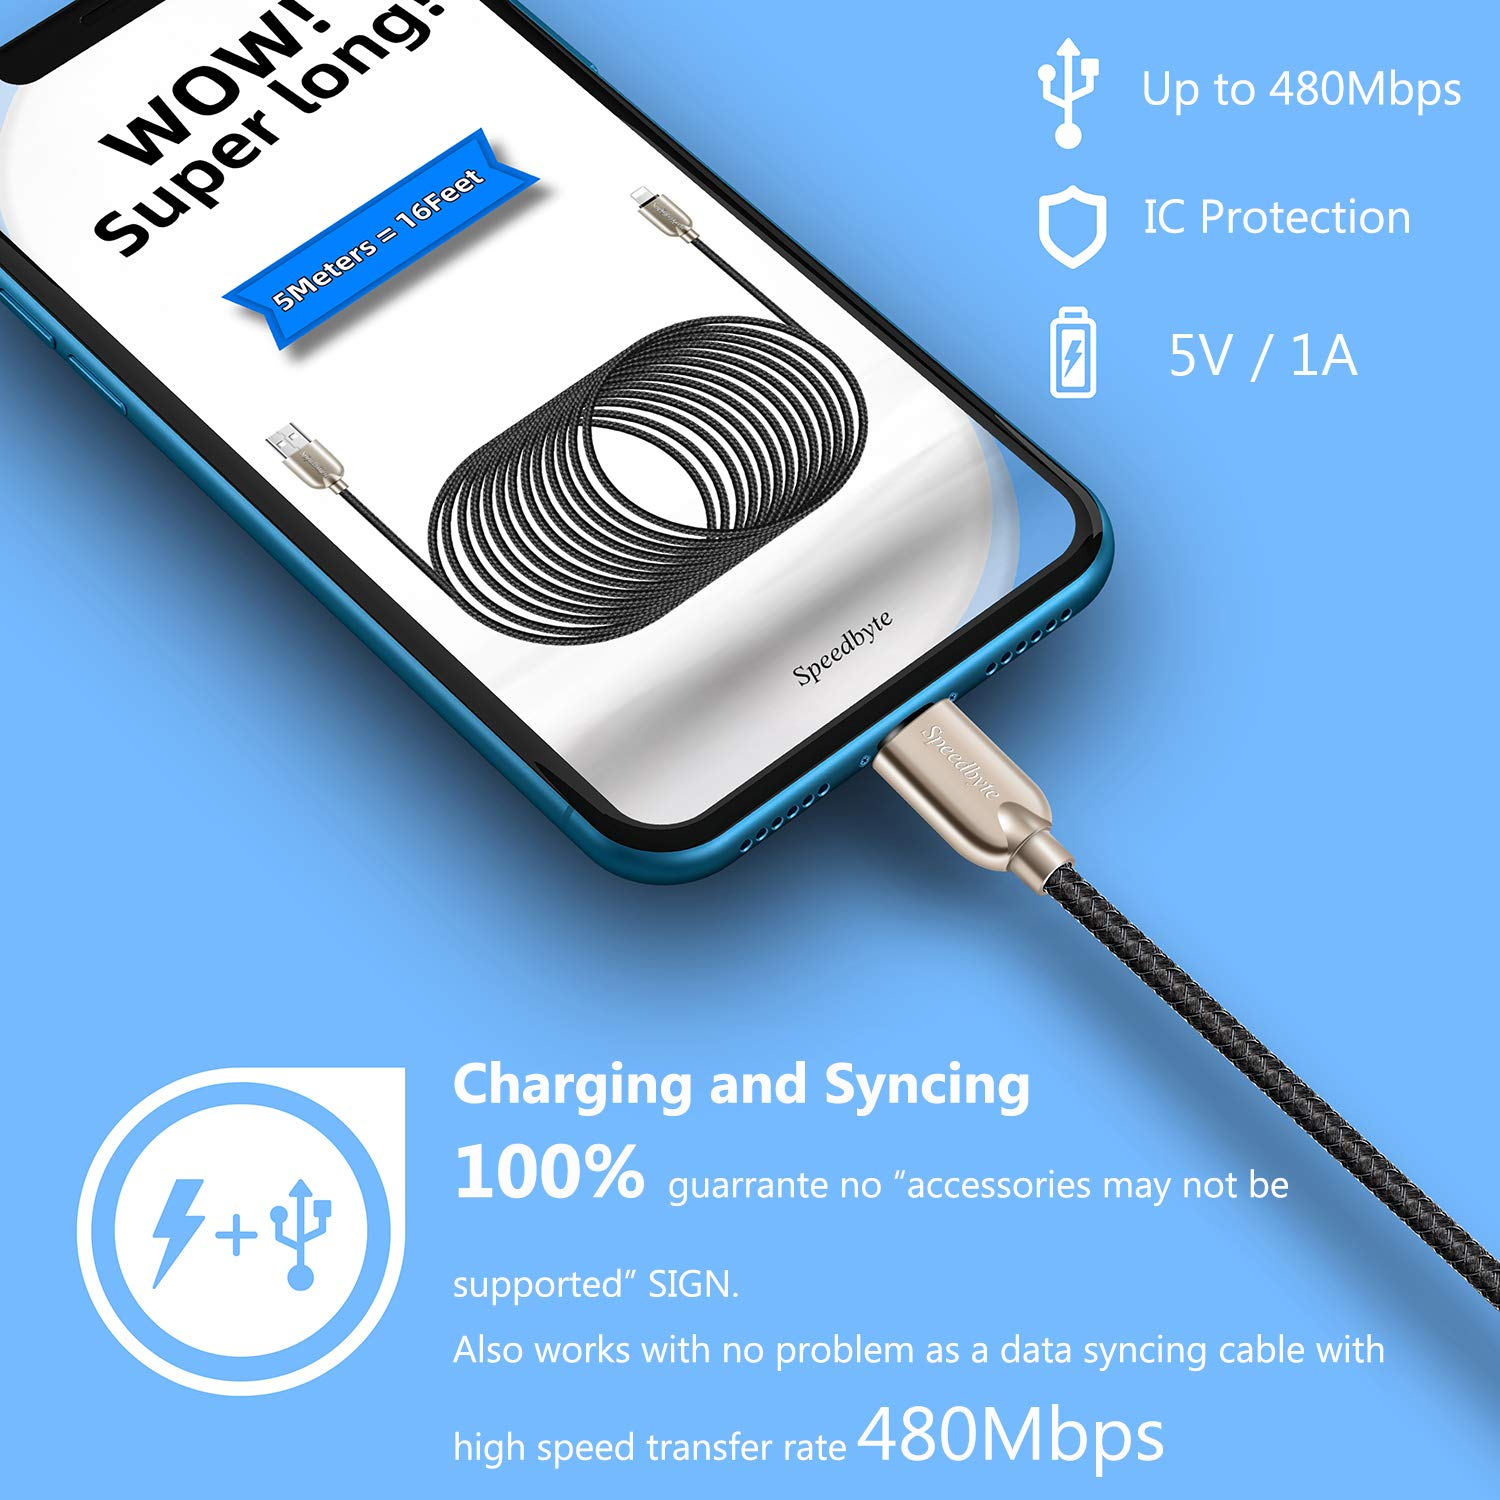 16FT Charger Cable,5M Nylon Fishnet Braided Super-long Charge Cord USB Cable with Zinc Alloy Connector Compatible with Phone 11/11Pro/11ProMax/Xs/Max/XR/X/8/8Plus/7/7Plus/6S/6S Plus/5/5S/5C/SE/Pad/Pod